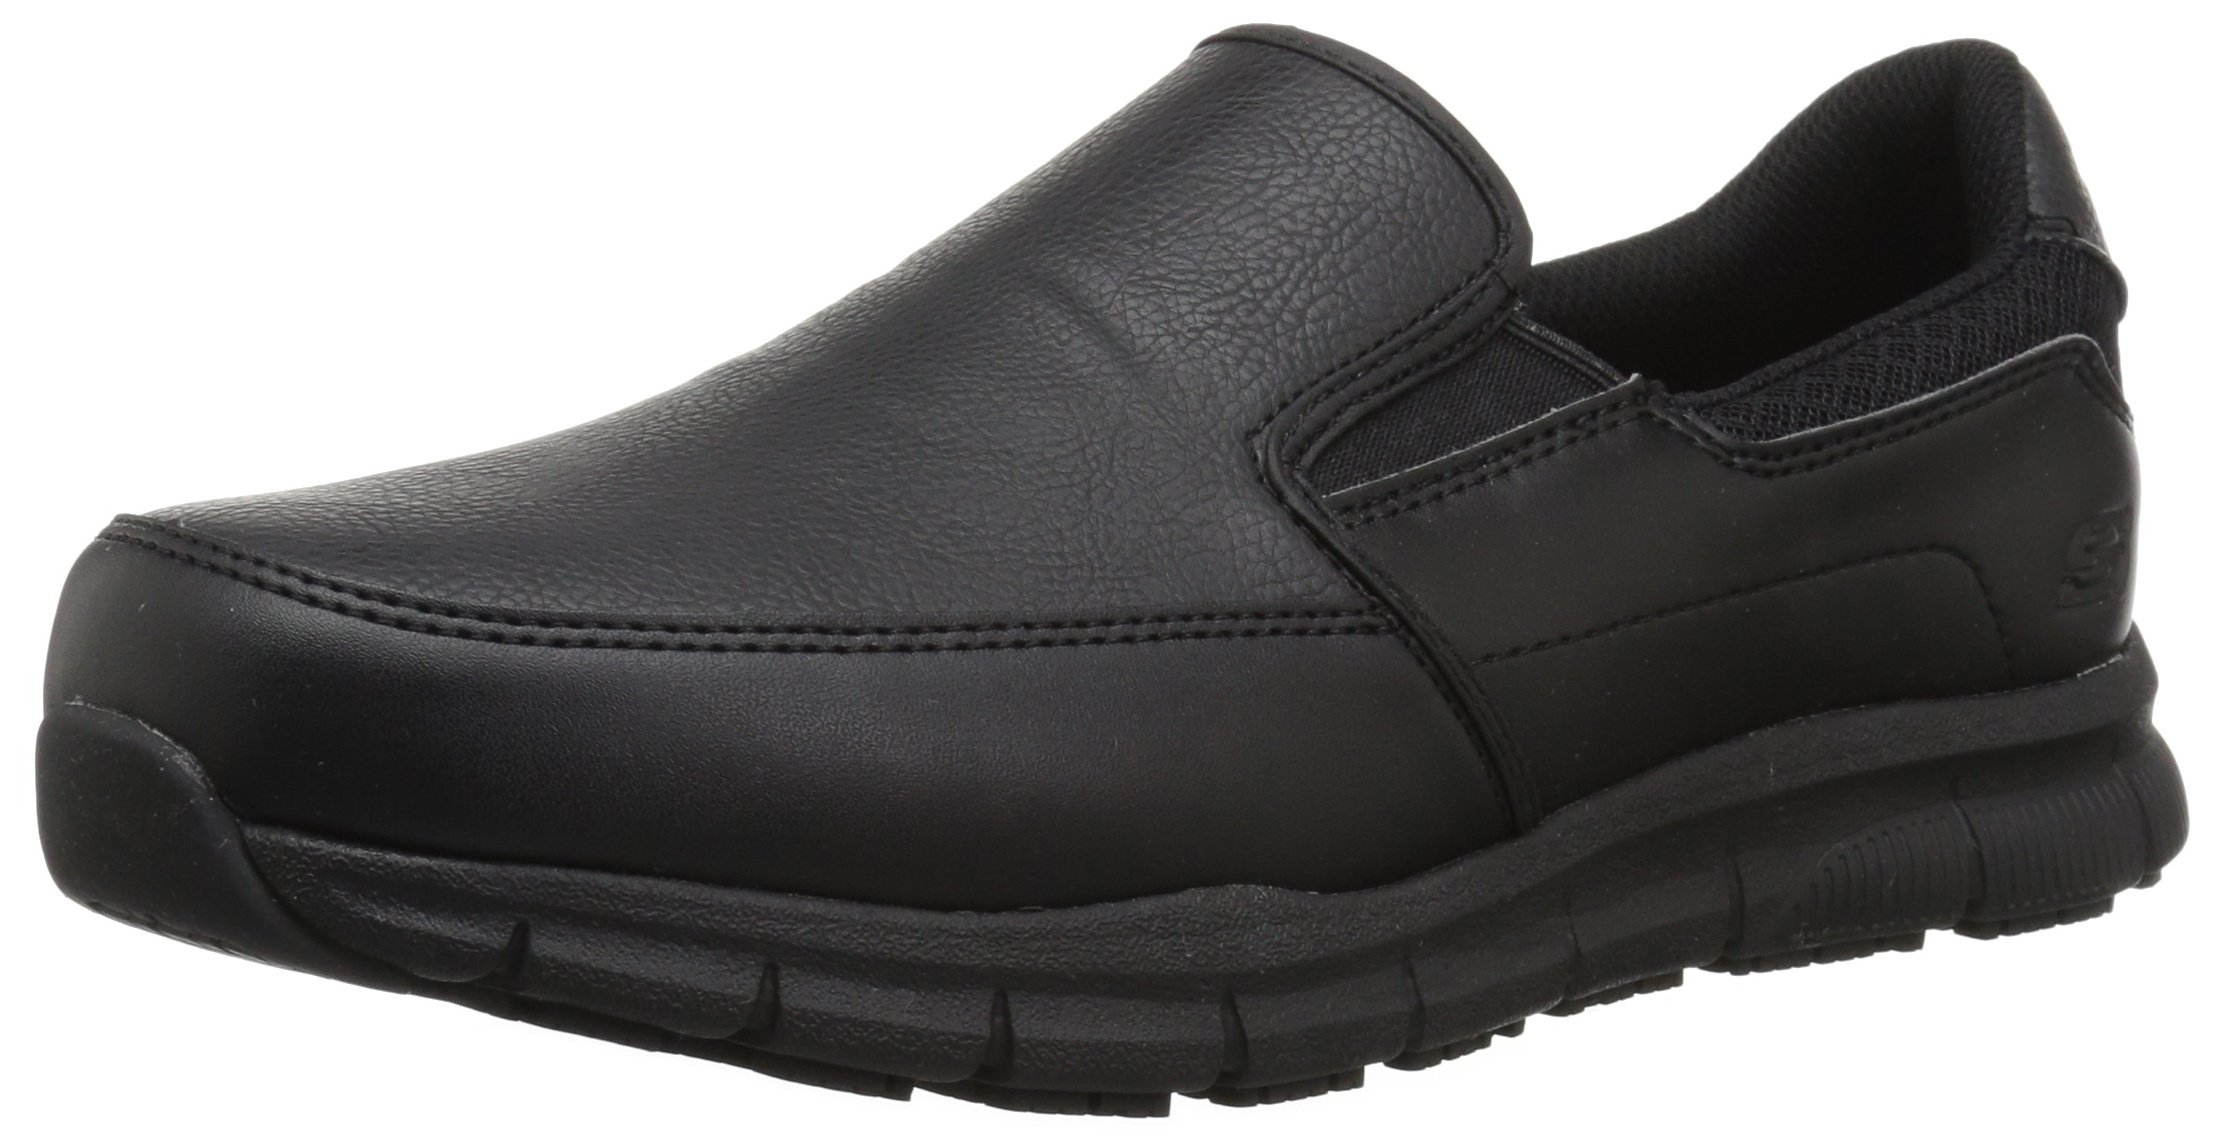 Skechers for Work Men's Nampa-Groton Food Service Shoe,Black Polyurethane,9 W US by Skechers